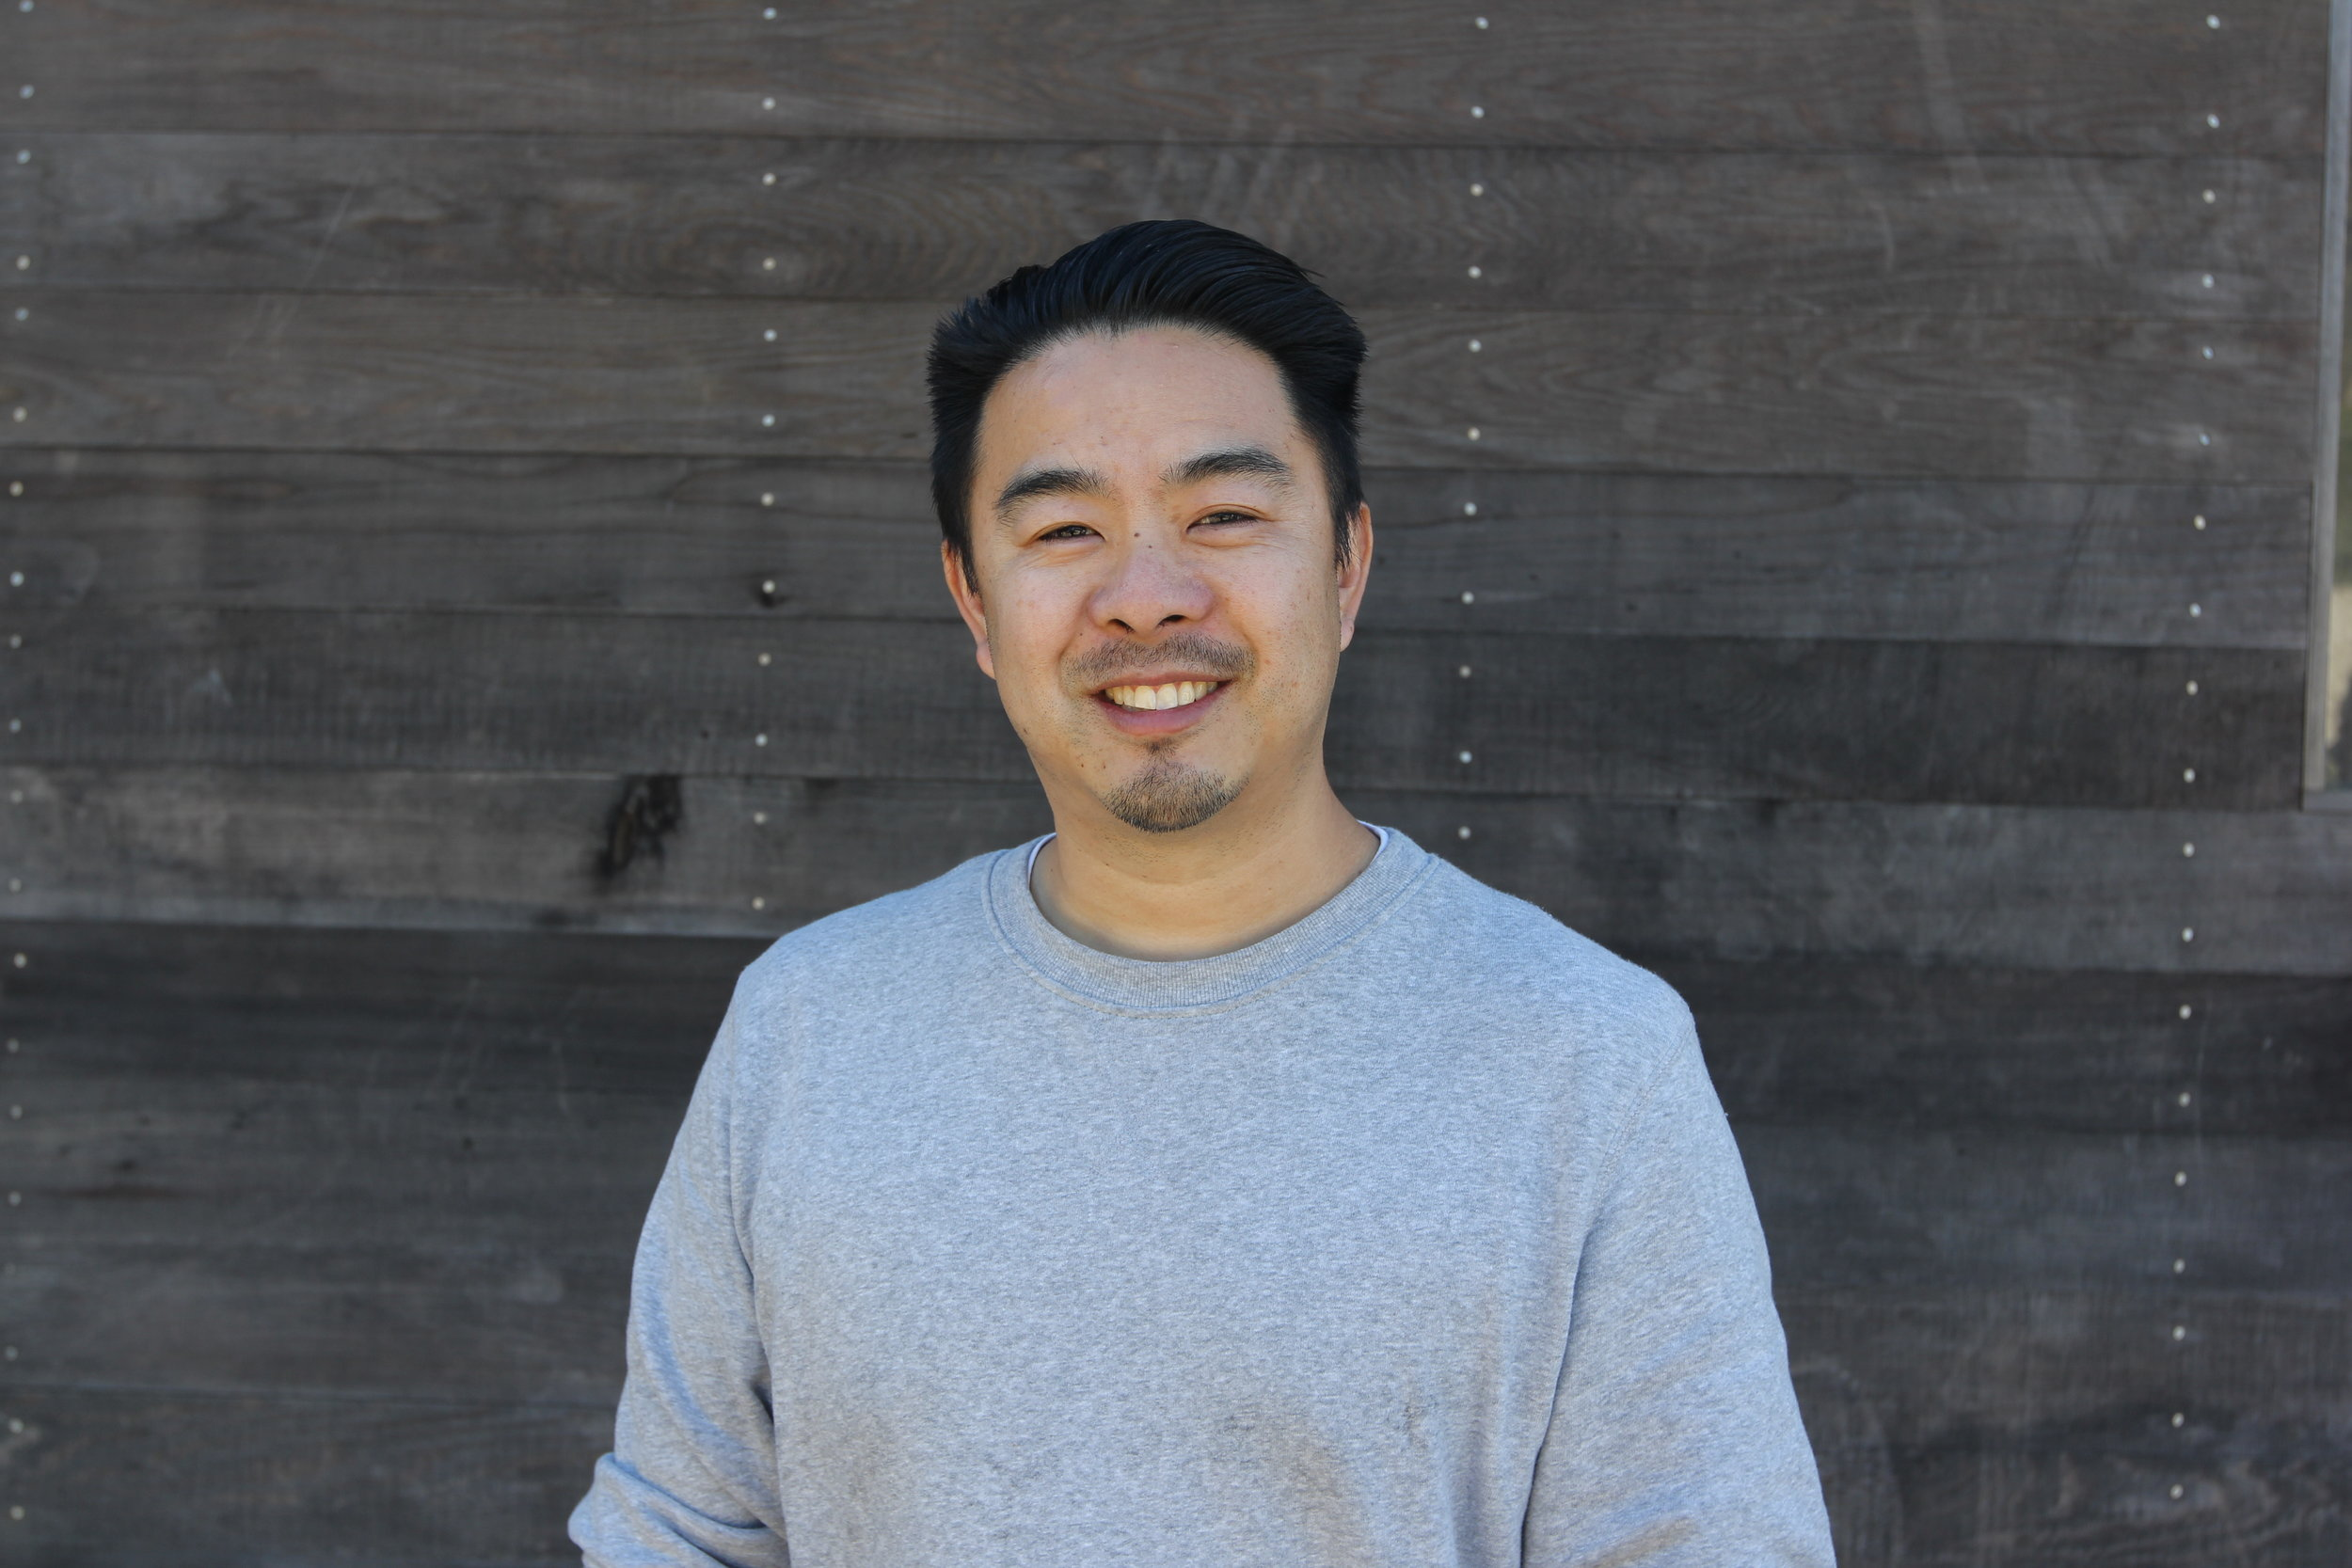 Clifton Jang, Board Member   I was born and raised in San Francisco and absolutely love our city! The people, the food, the vibe, and our sports teams! Passionate about bringing the good news of Jesus Christ to the world. Especially to those who are marginalized, oppressed, and whose voices aren't heard. Showing God's love not just in word, but also in meeting tangible needs.